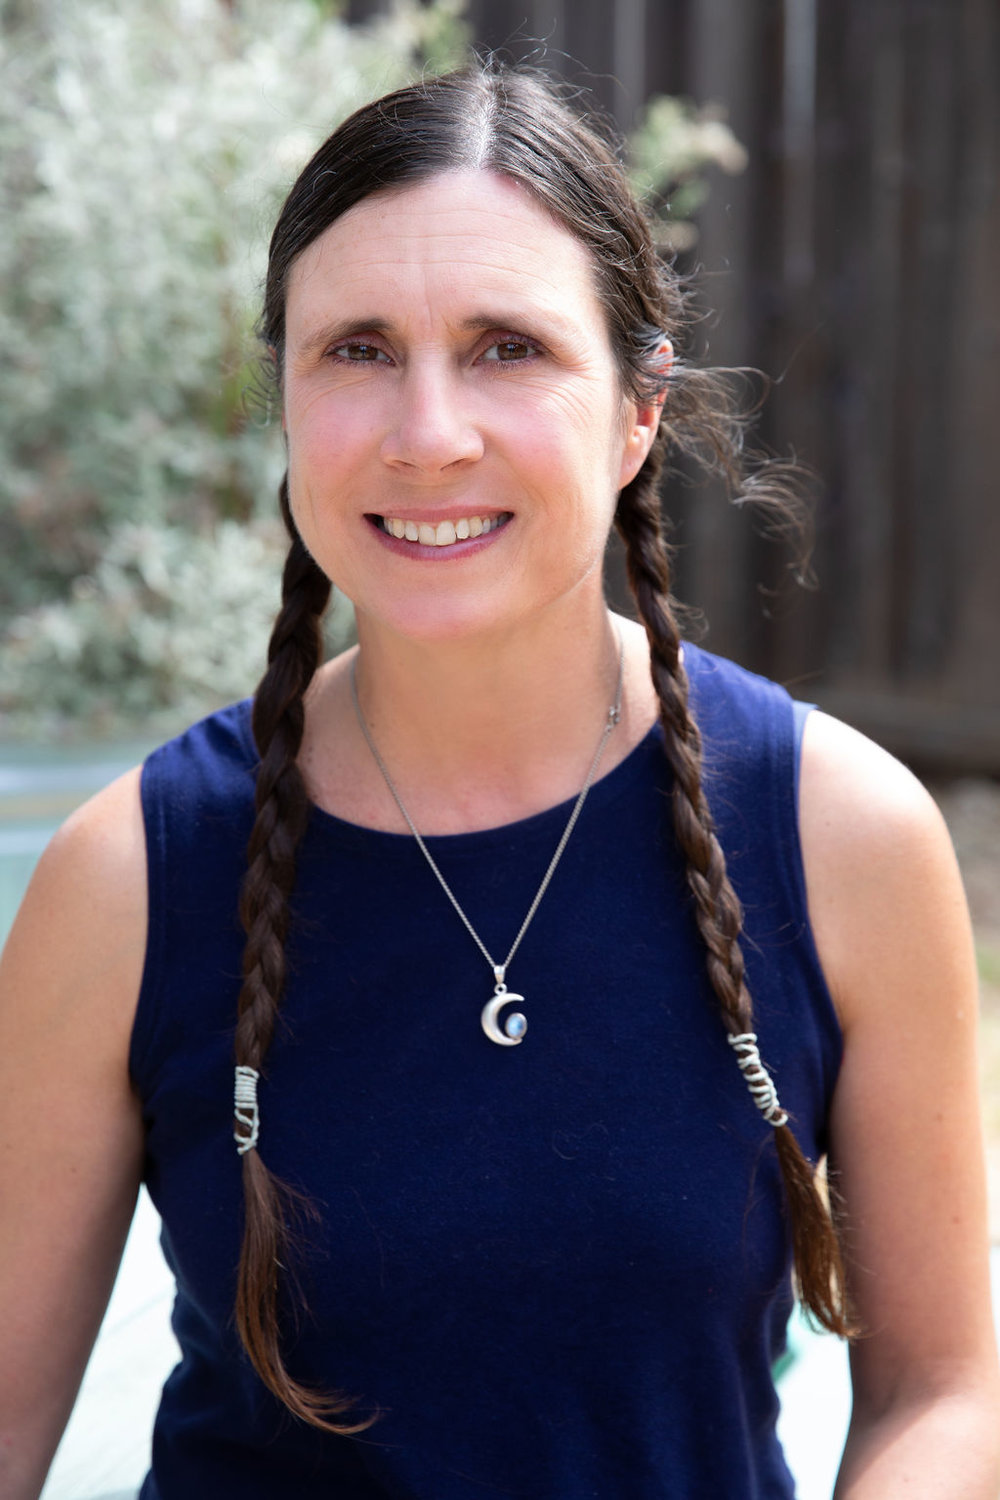 Paula Sanders Sage - Kindergarten Co-Lead TeacherPaula Sanders has been an Early Childhood Educator for twenty-three years in both public and Waldorf private schools. She attended the Rudolph Steiner College, College of Marin and a graduate of Bay Area Center of Waldorf Teacher Training. Paula comes with many gifts and diverse in languages, sensory integration movements and a great storyteller.